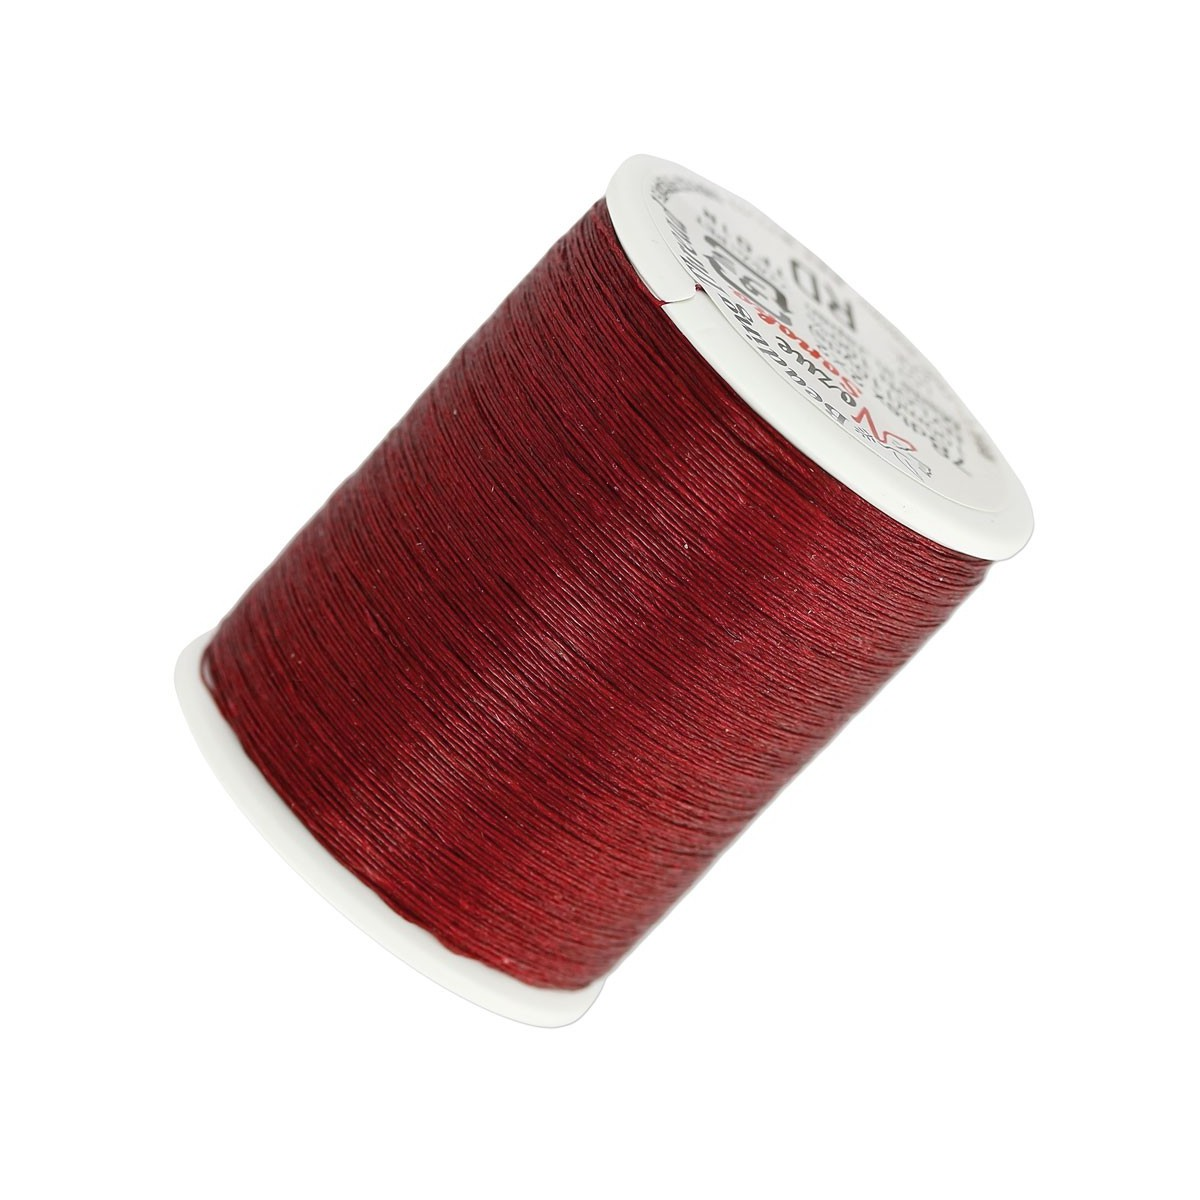 Sonoko Nozue Beading Thread 0.20mm Red100 Mt